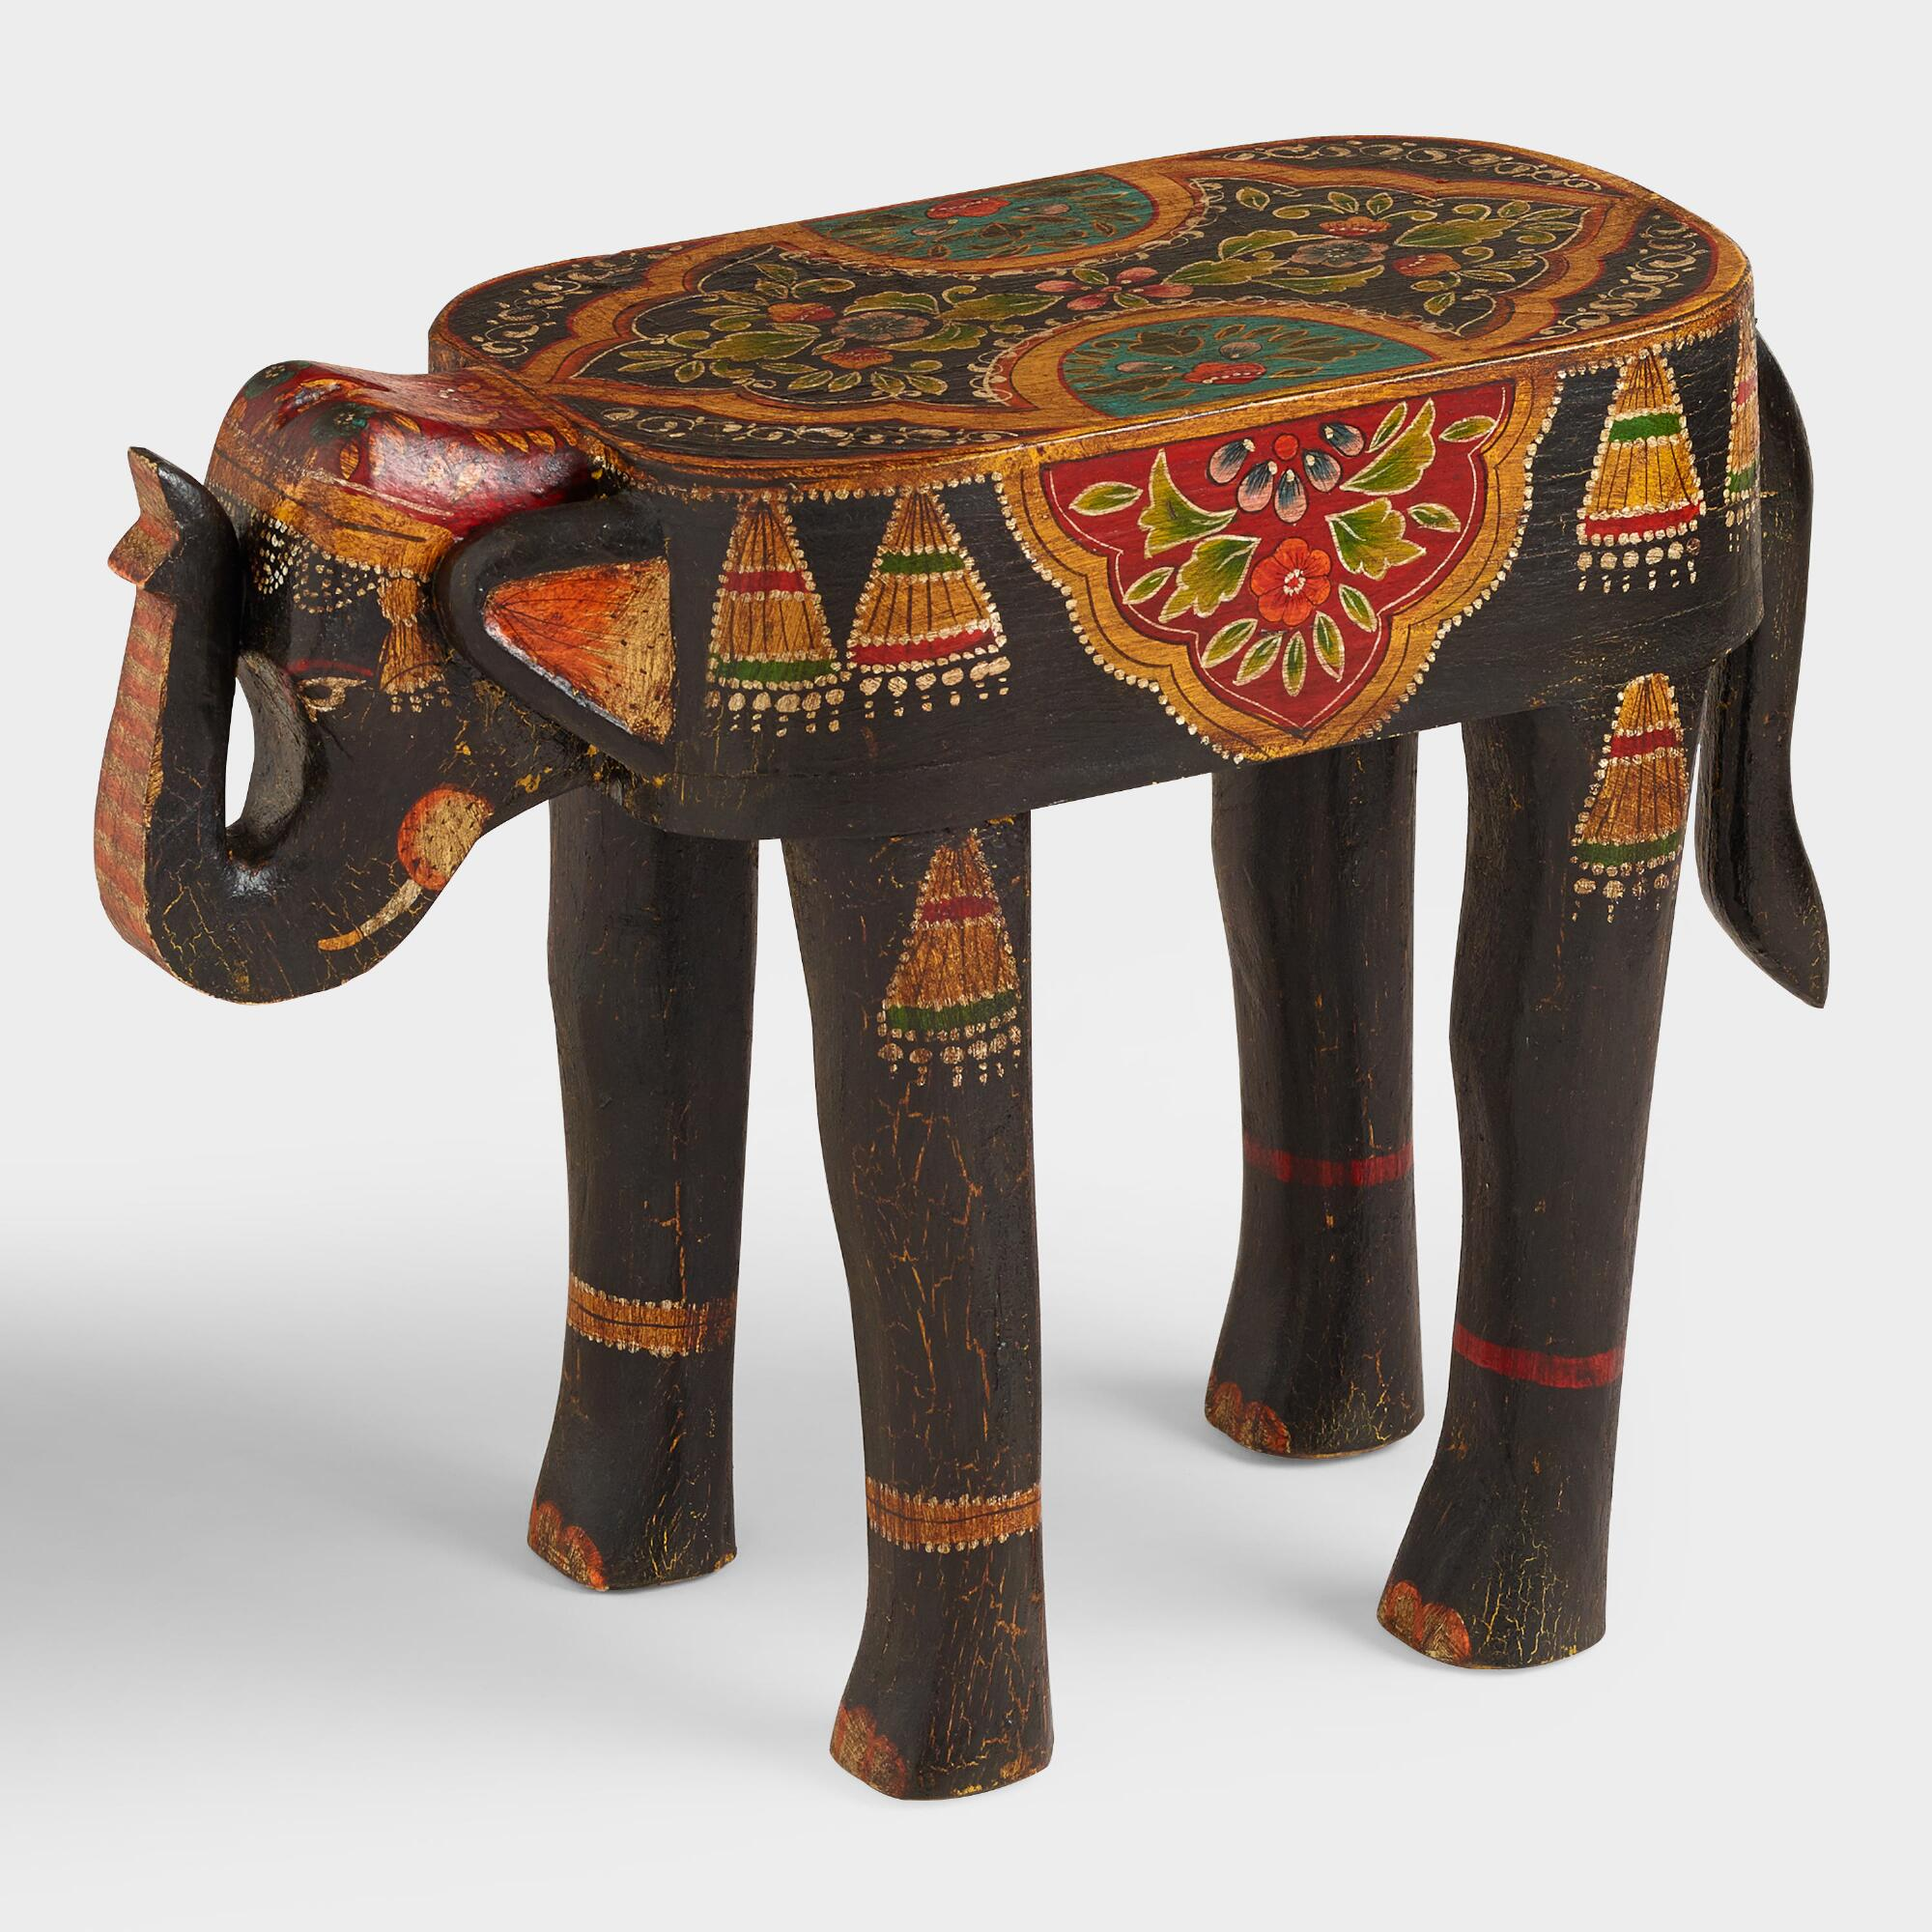 hand painted wood elephant accent table gray world market inexpensive console rustic dale tiffany ceiling lamps large bedside tables piece glass set legs entry way skinny couch